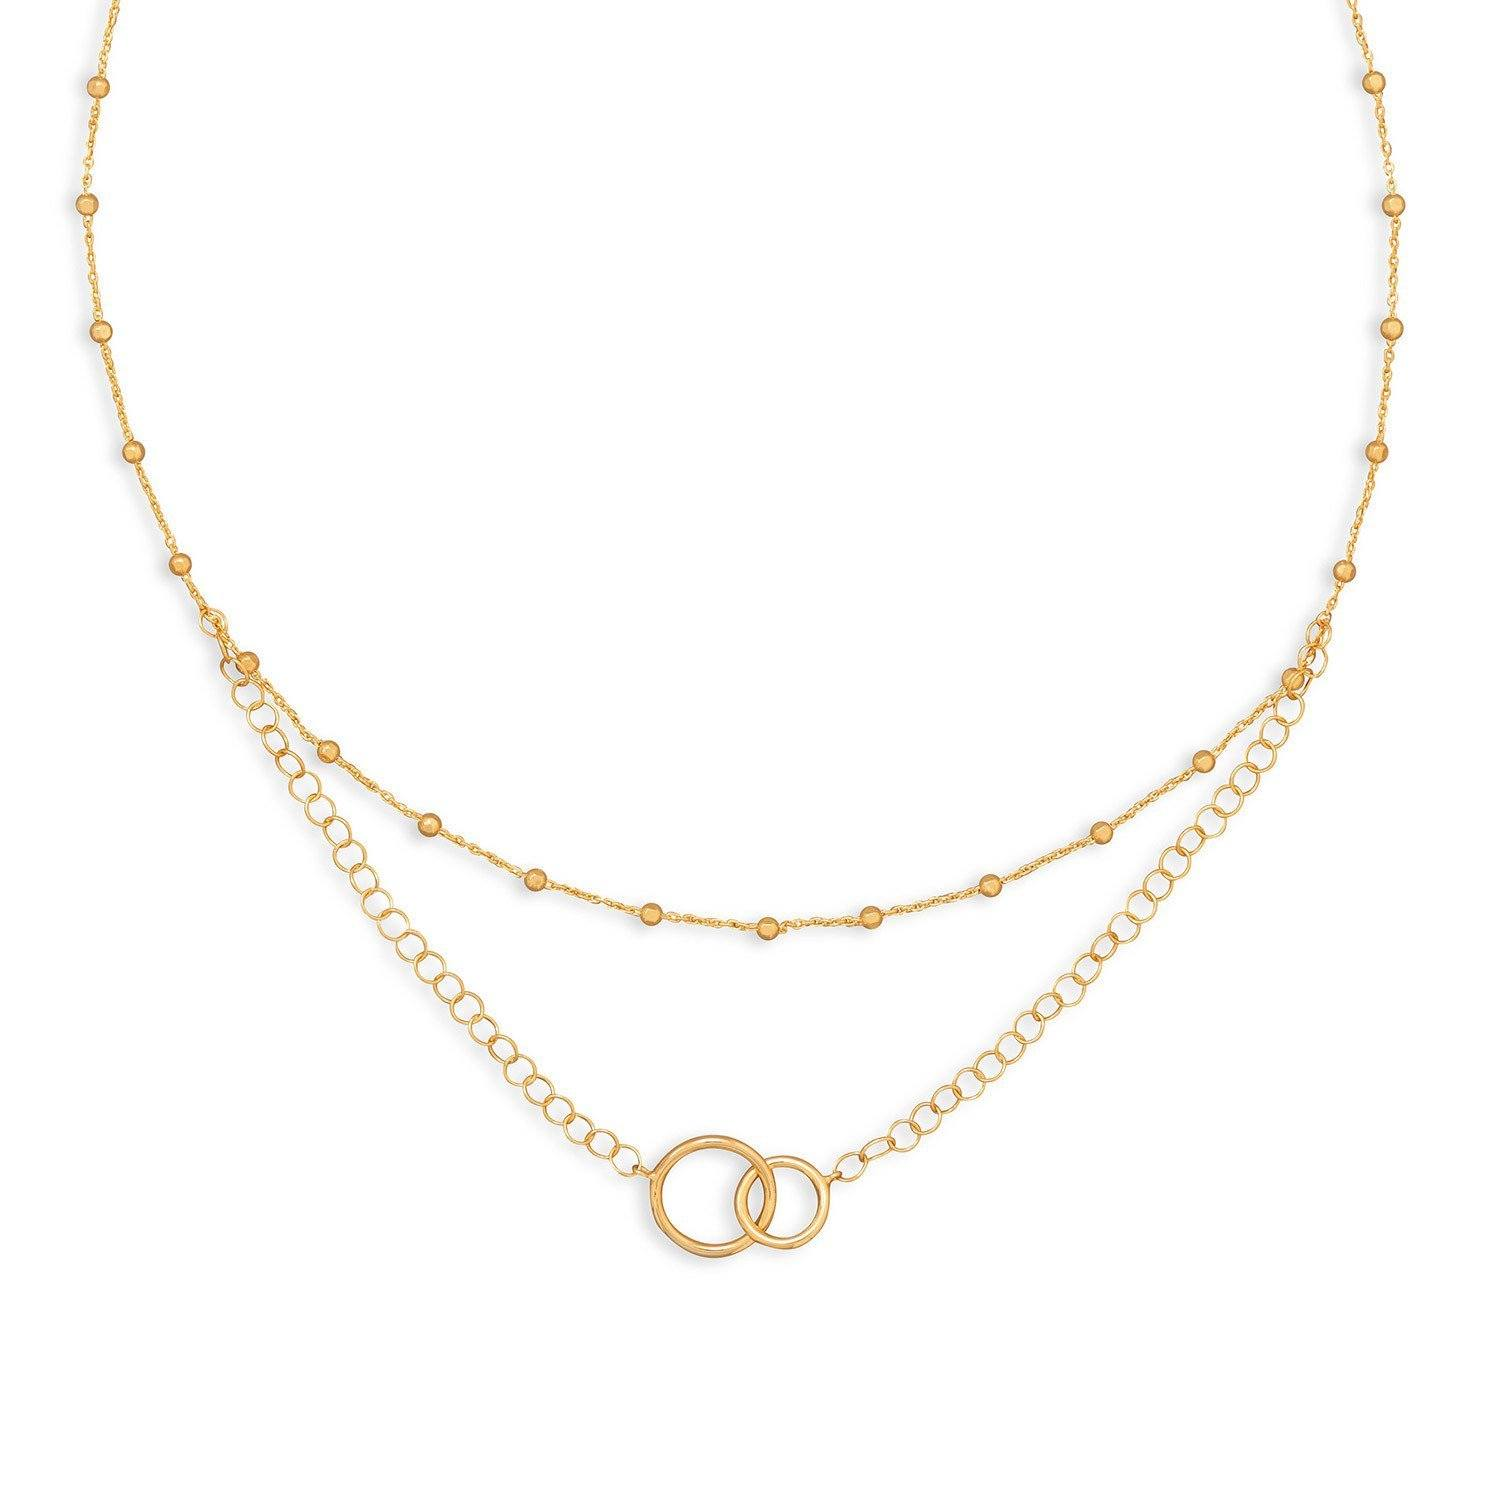 "14 Karat Gold Plated Multistrand Beaded Necklace with Circle Link ~ 16"" - Cece & Me - Home and Gifts"